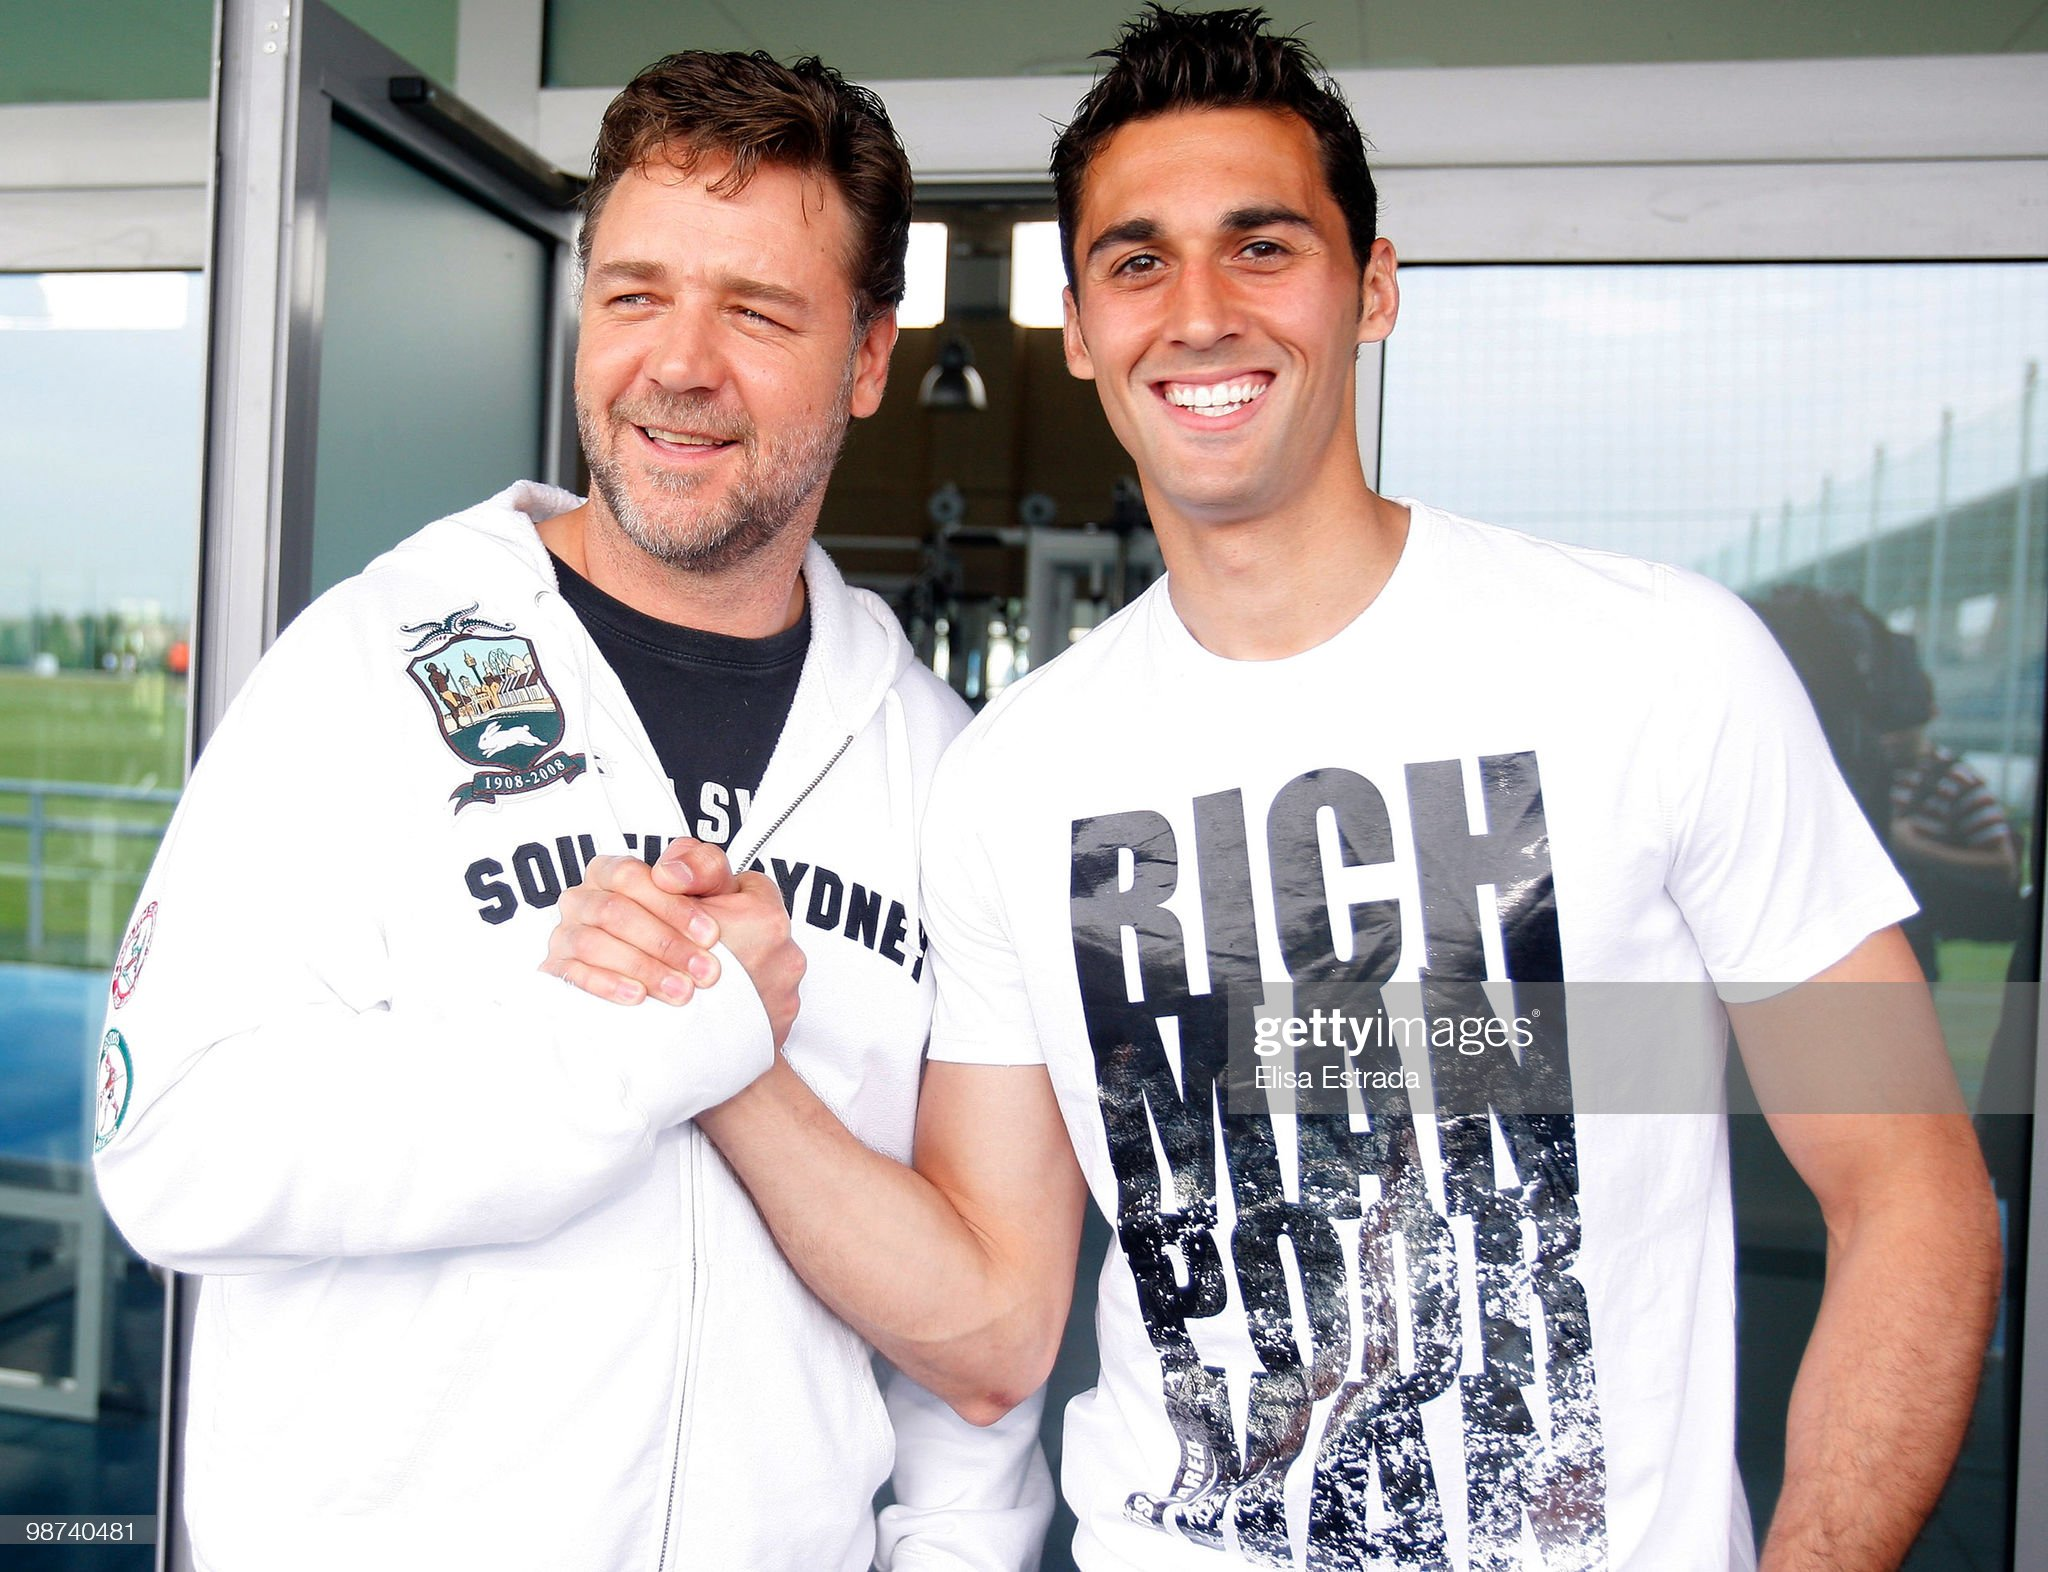 ¿Cuánto mide Álvaro Arbeloa? Actor-russell-crowe-poses-with-alvaro-arbeloa-of-real-madrid-during-a-picture-id98740481?s=2048x2048